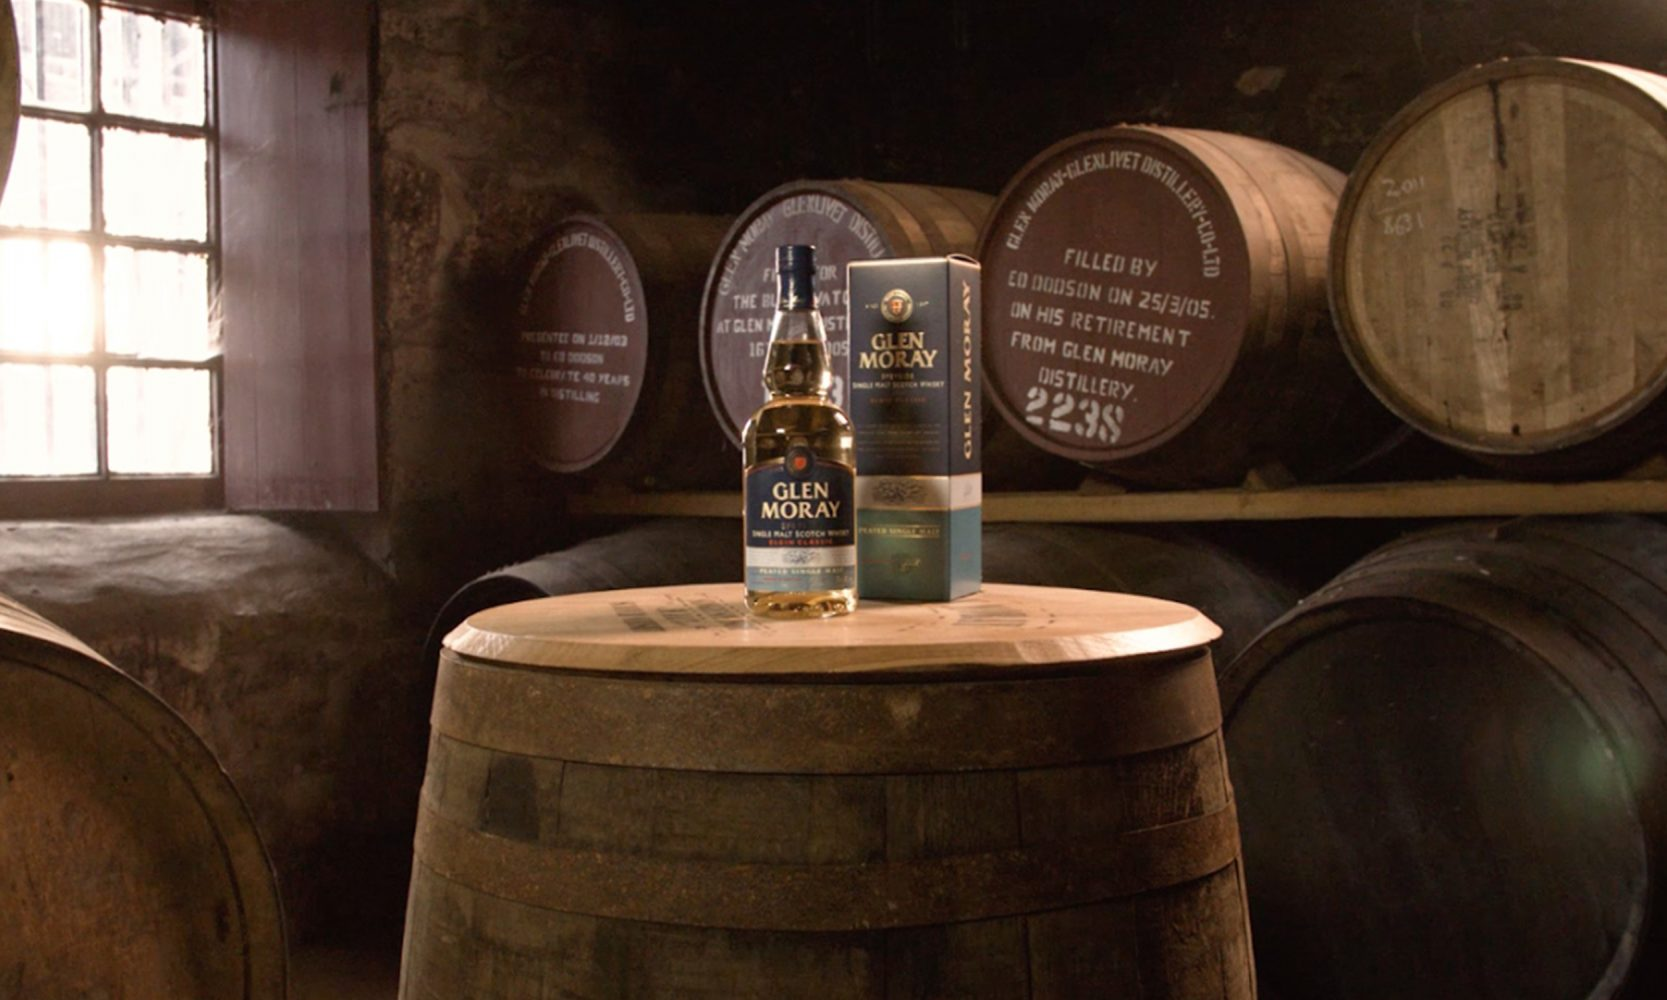 Case Study - Glen Moray Distillery - Fileder Filter Systems